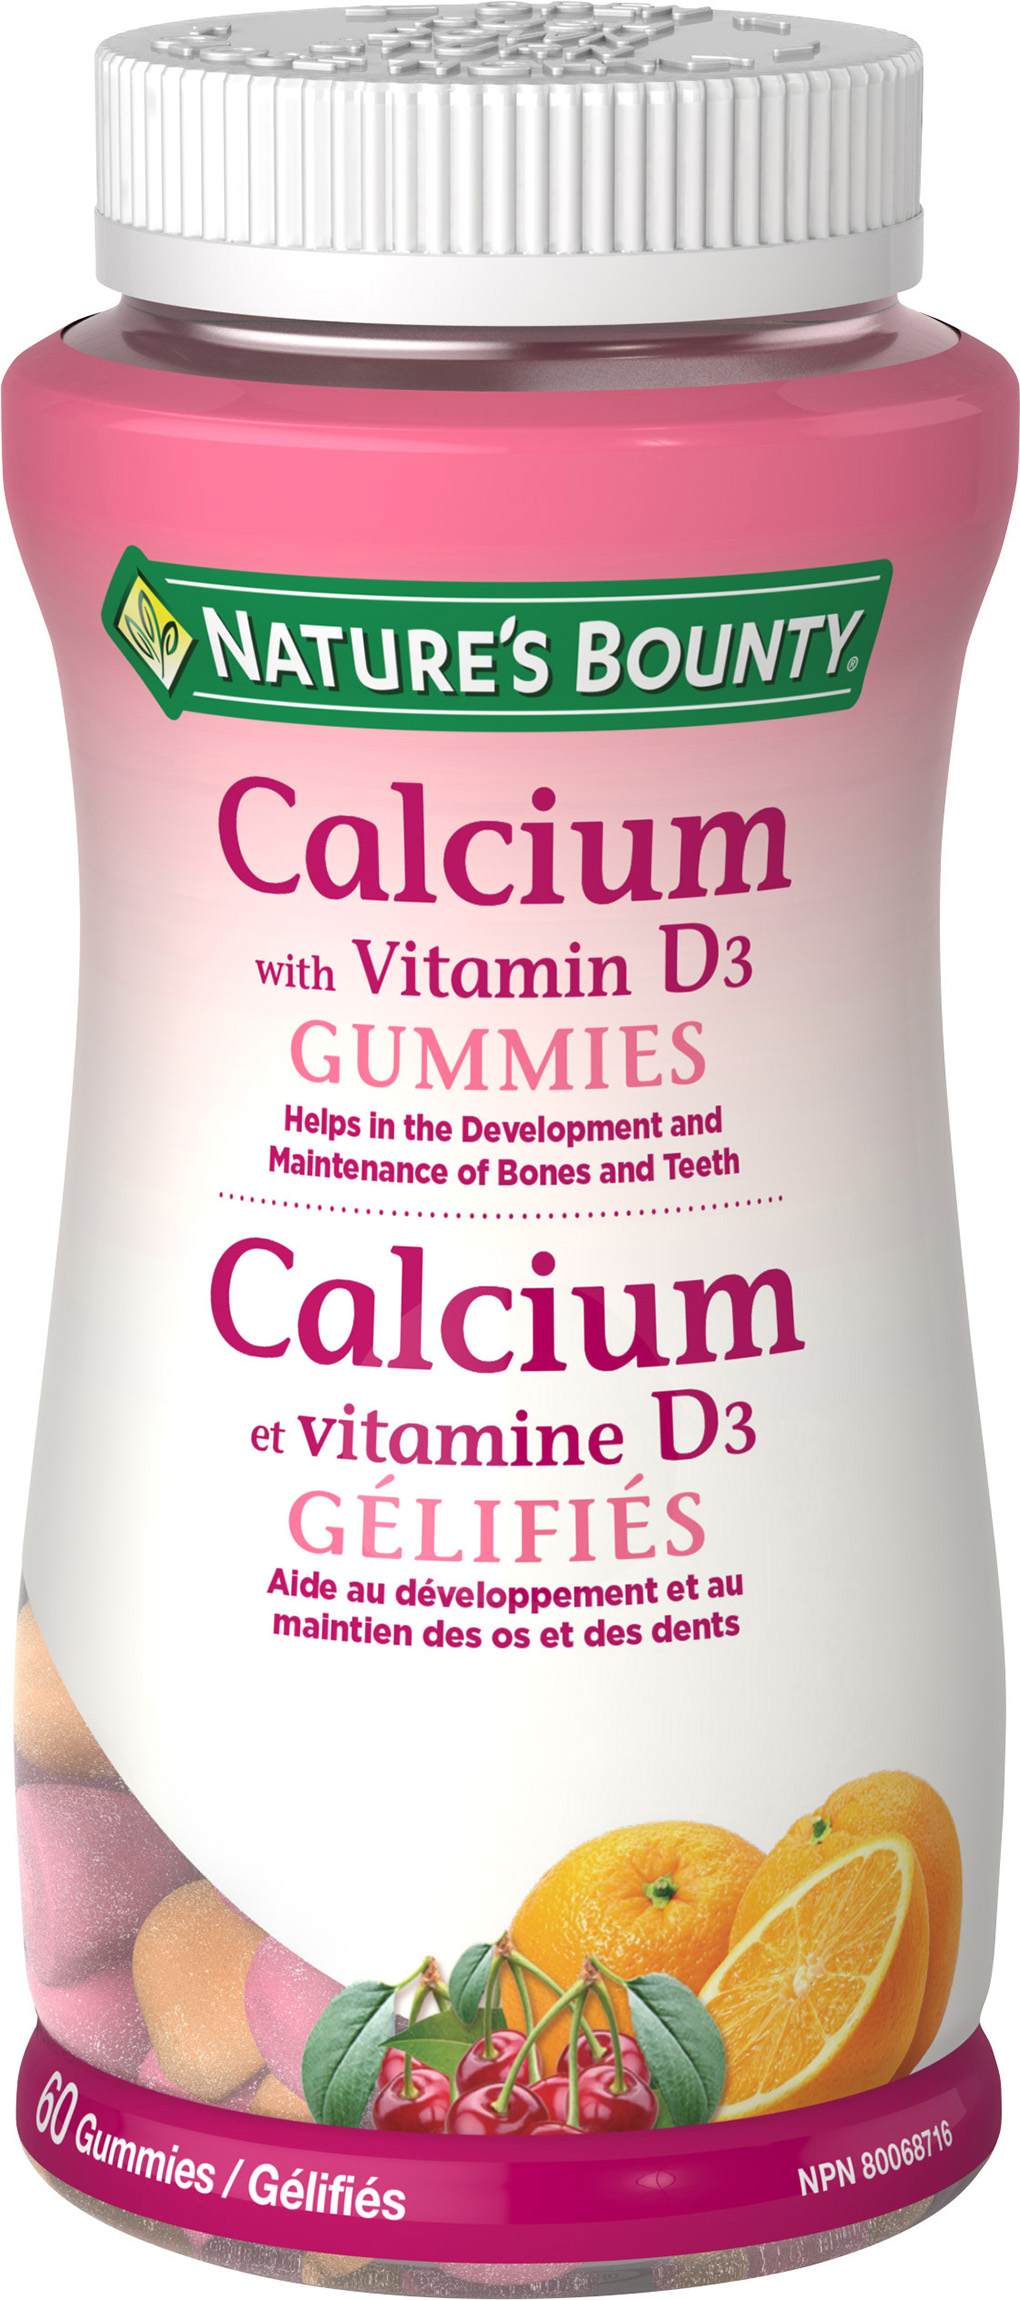 Calcium with Vitamin D3 Gummies